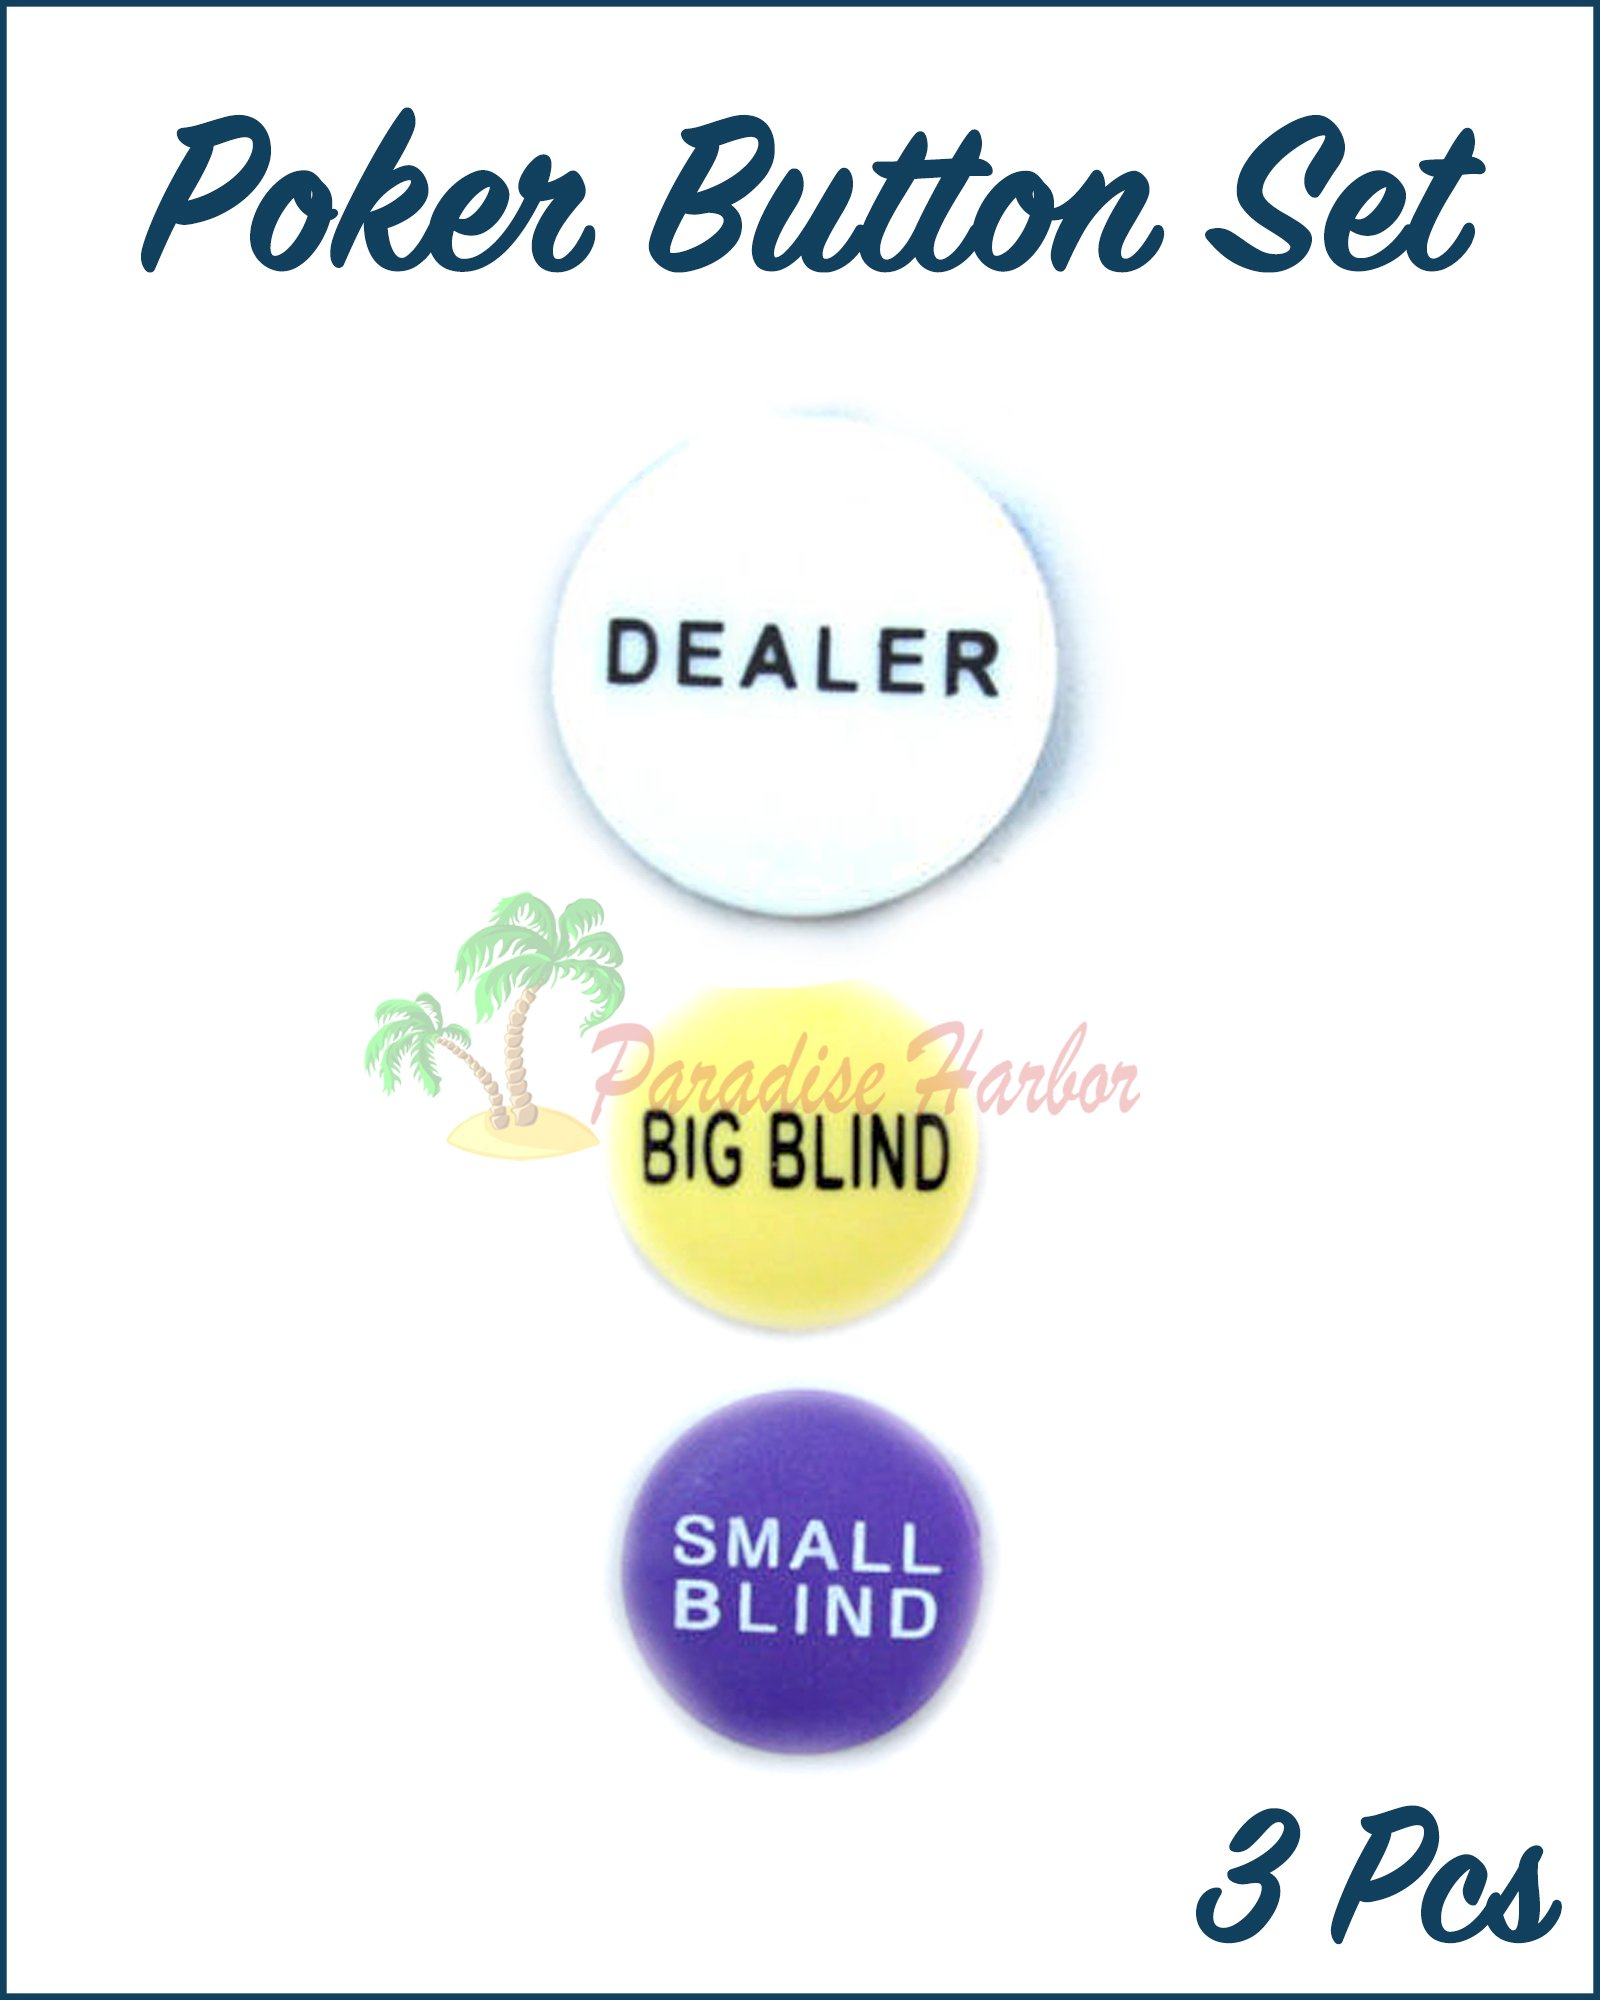 Paradise Harbor 3 Pcs Poker Button Set Small Blind Big Blind and Dealer Button Poker Lot